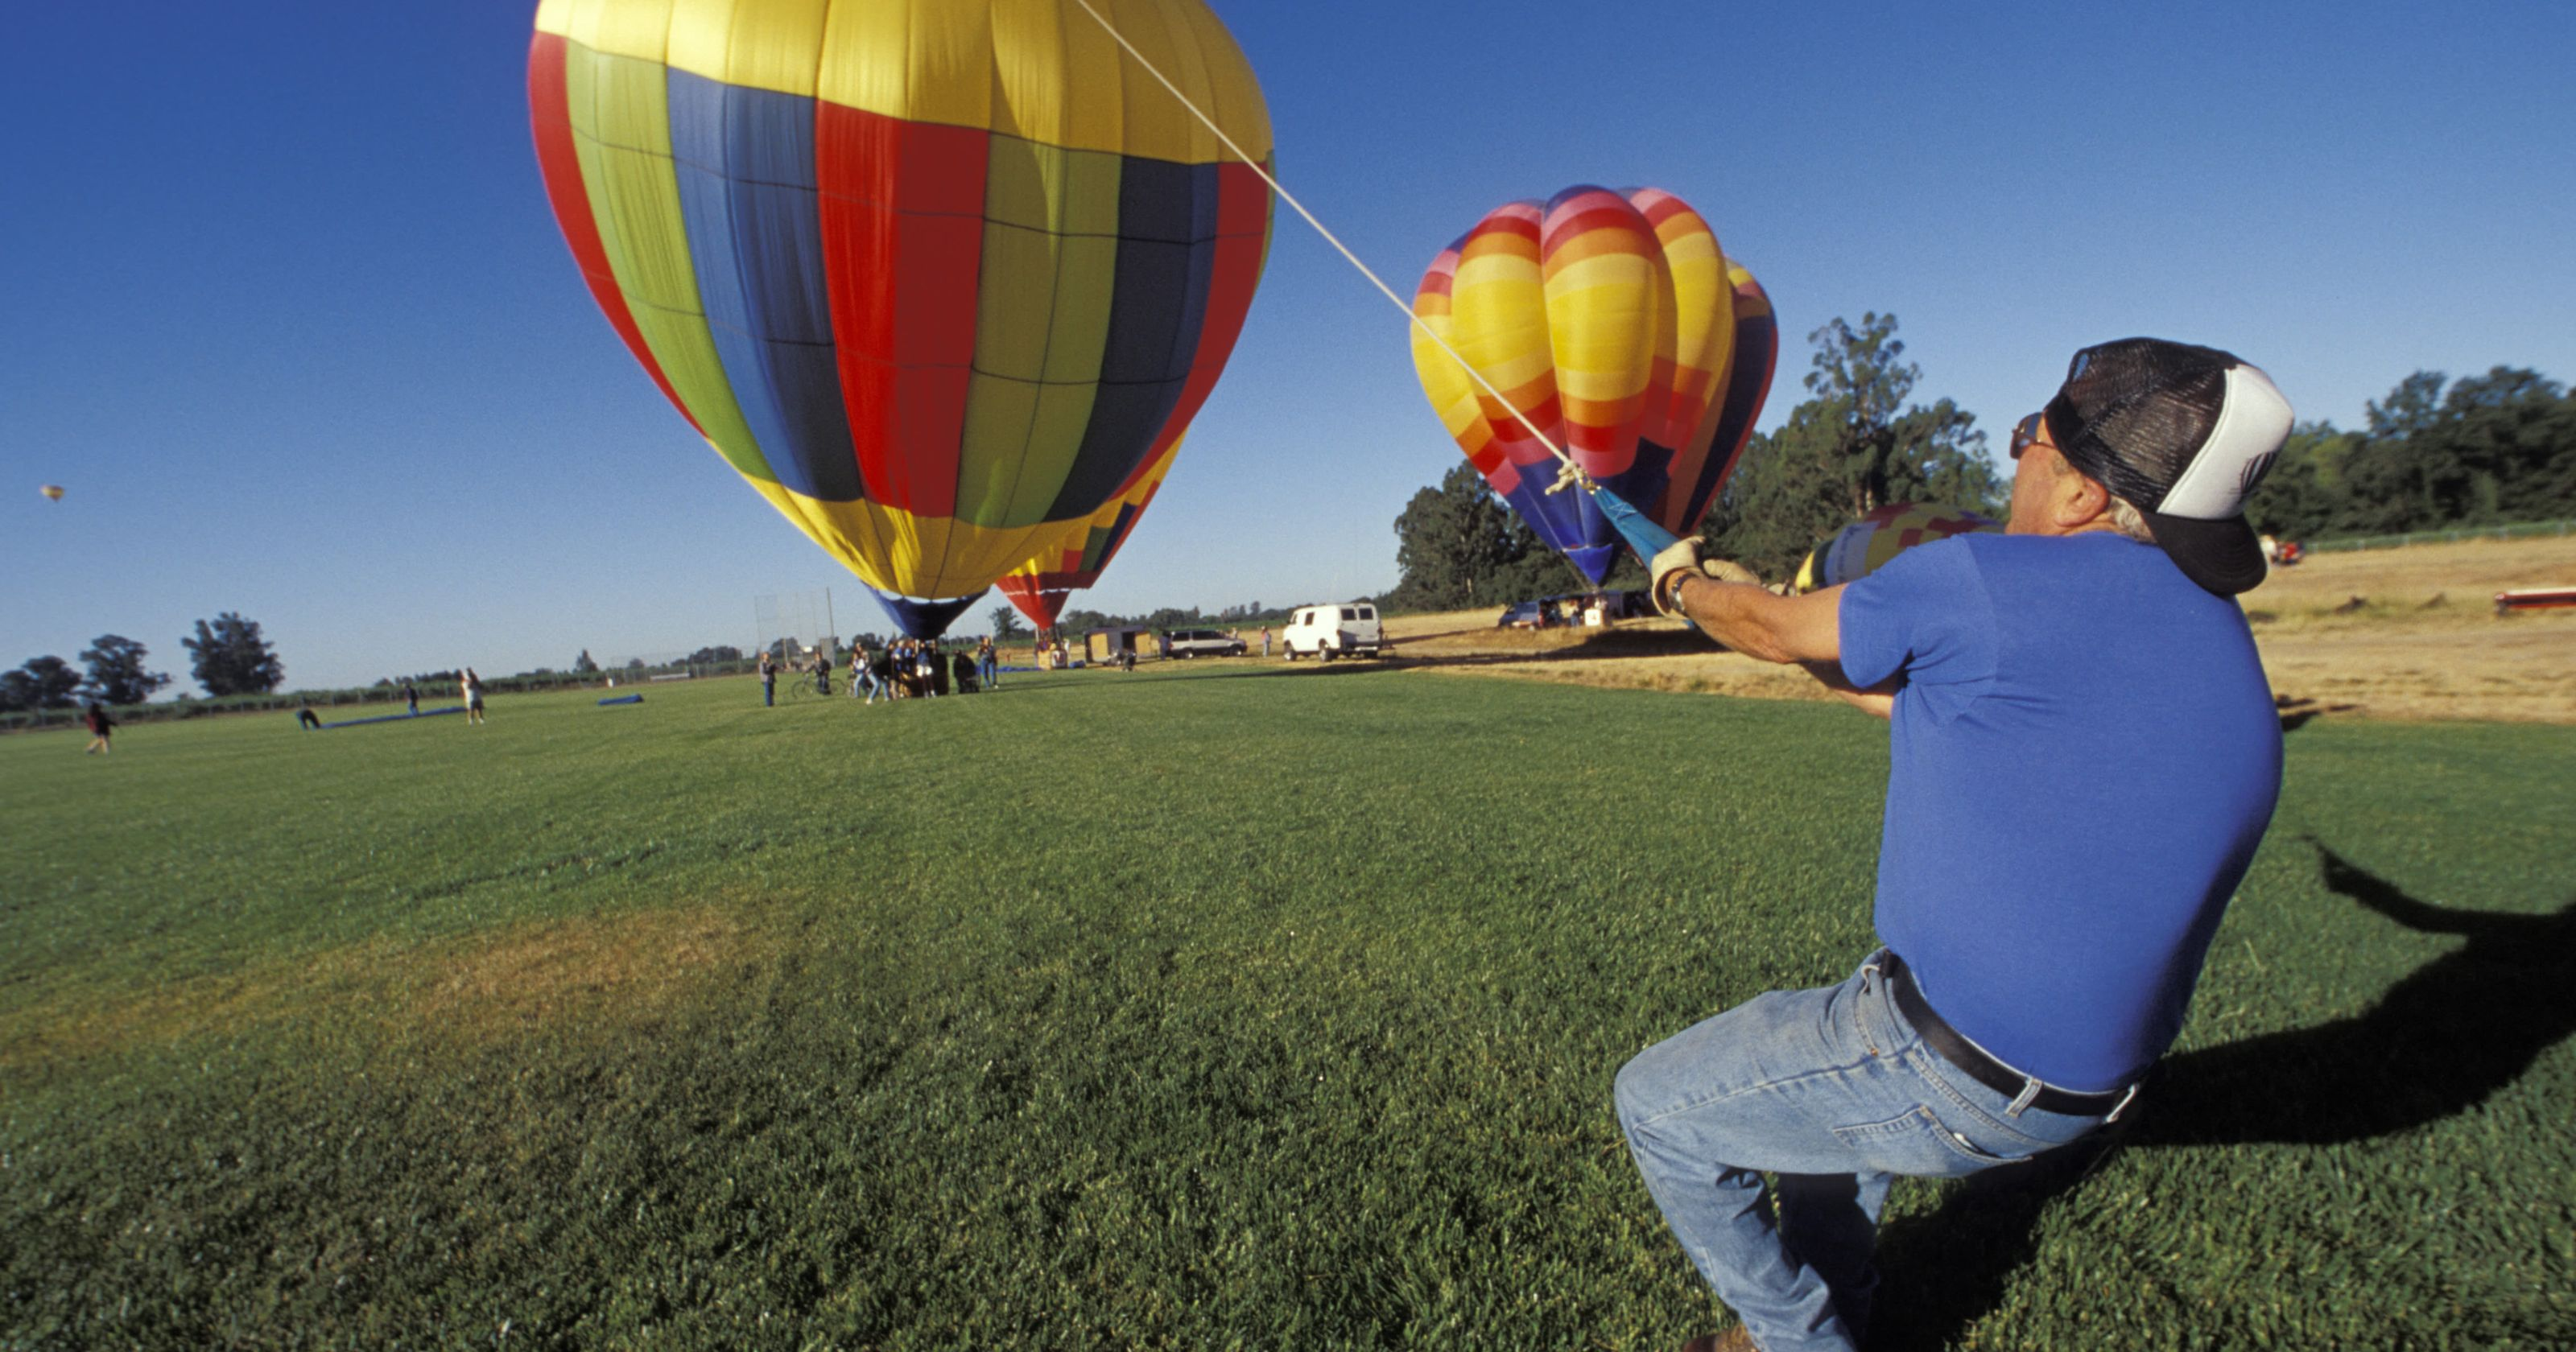 A look at the deadliest hot air balloon accidents